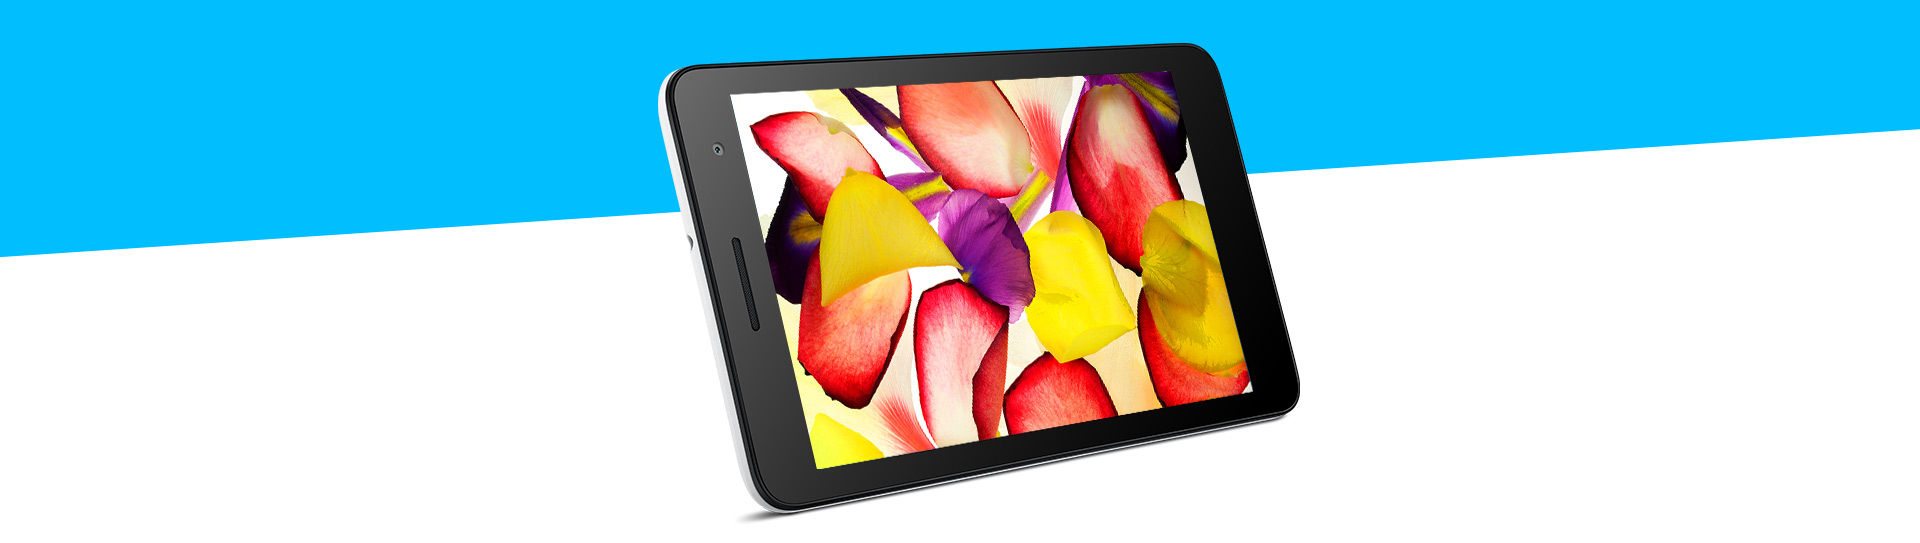 7-INCH DISPLAY, CAPABLE OF 16 MILLION COLORS